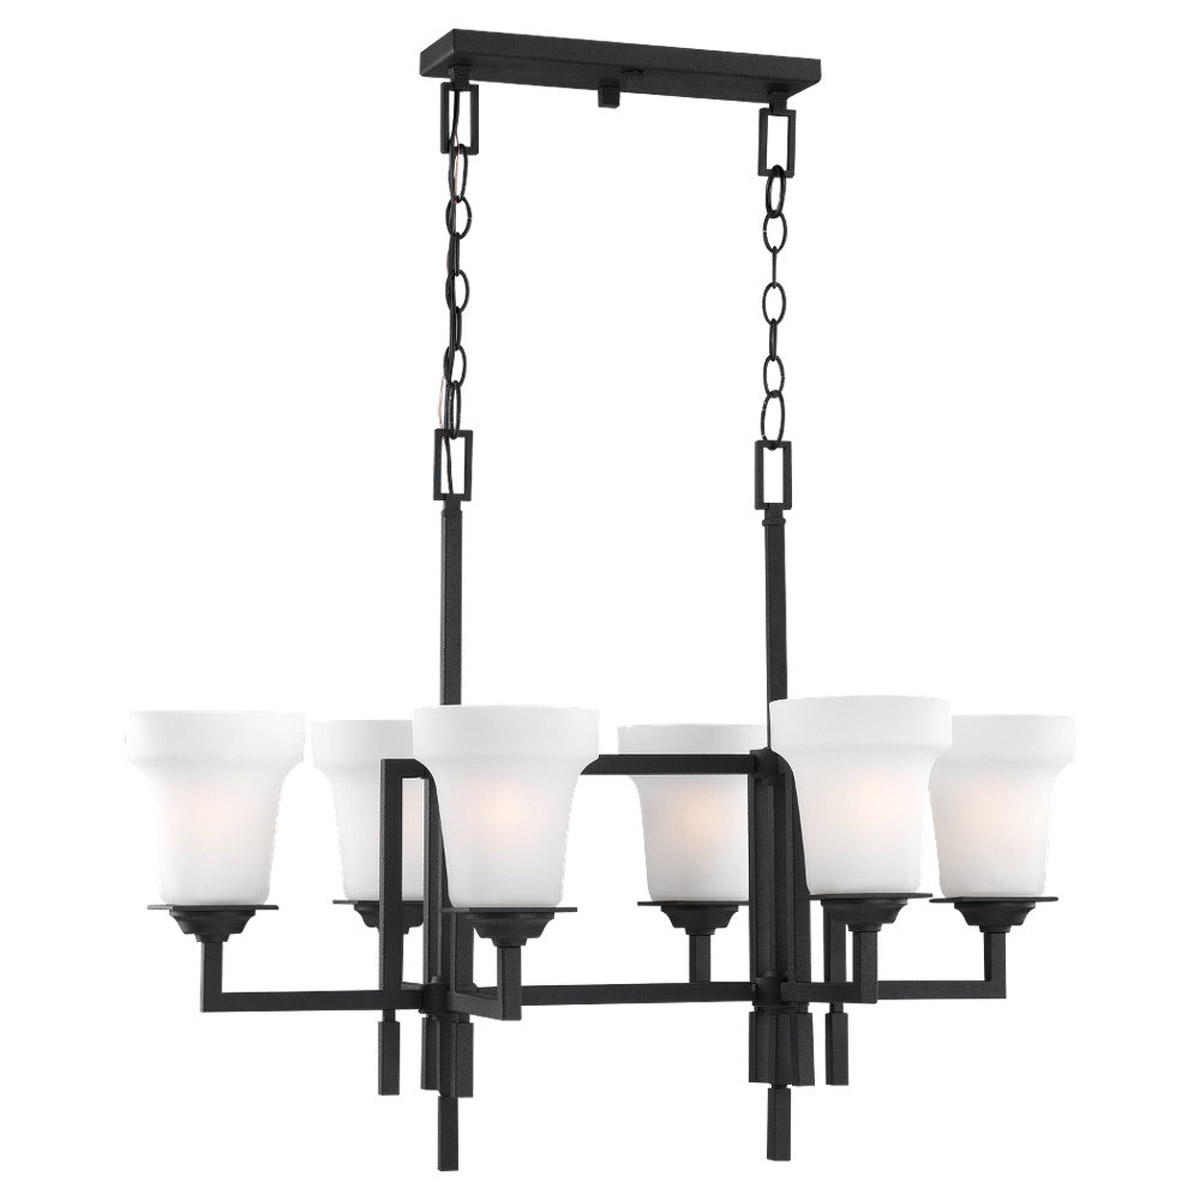 Sea Gull Lighting Cardwell 6 Light Chandelier in Blacksmith 31632-839 photo